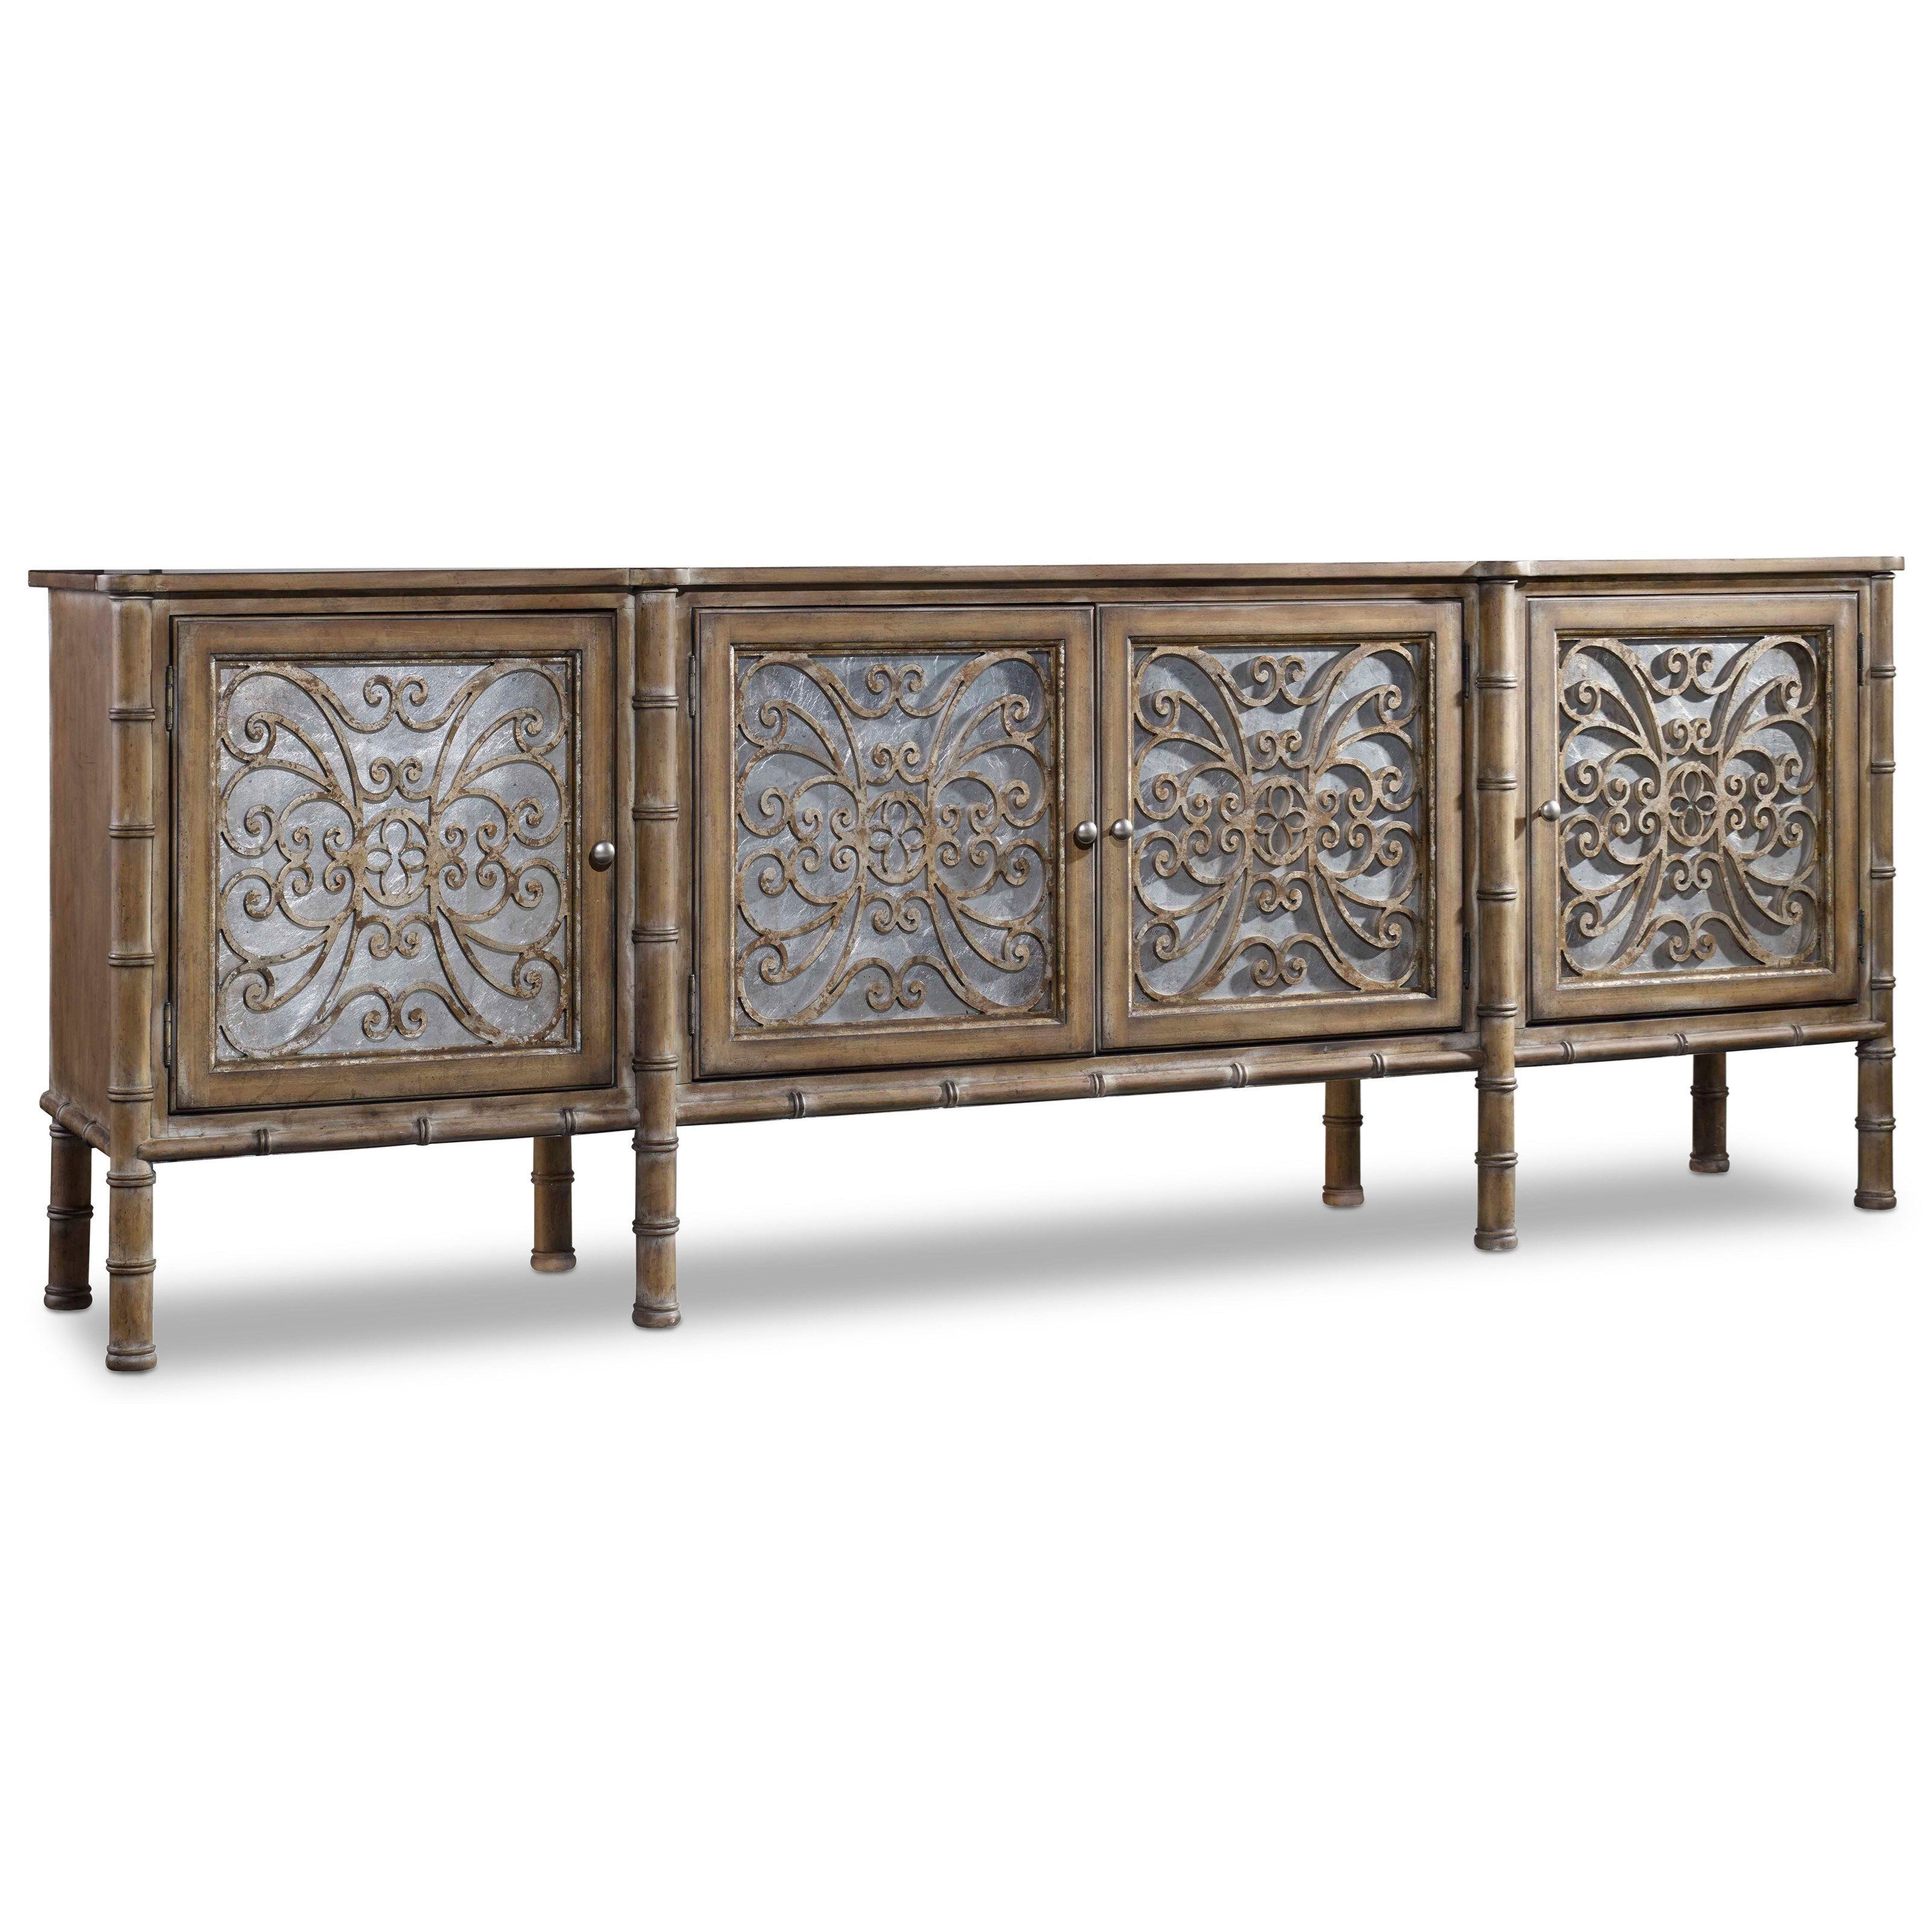 Hamilton Home Living Room Accents Storage Console - Item Number: 5467-85001